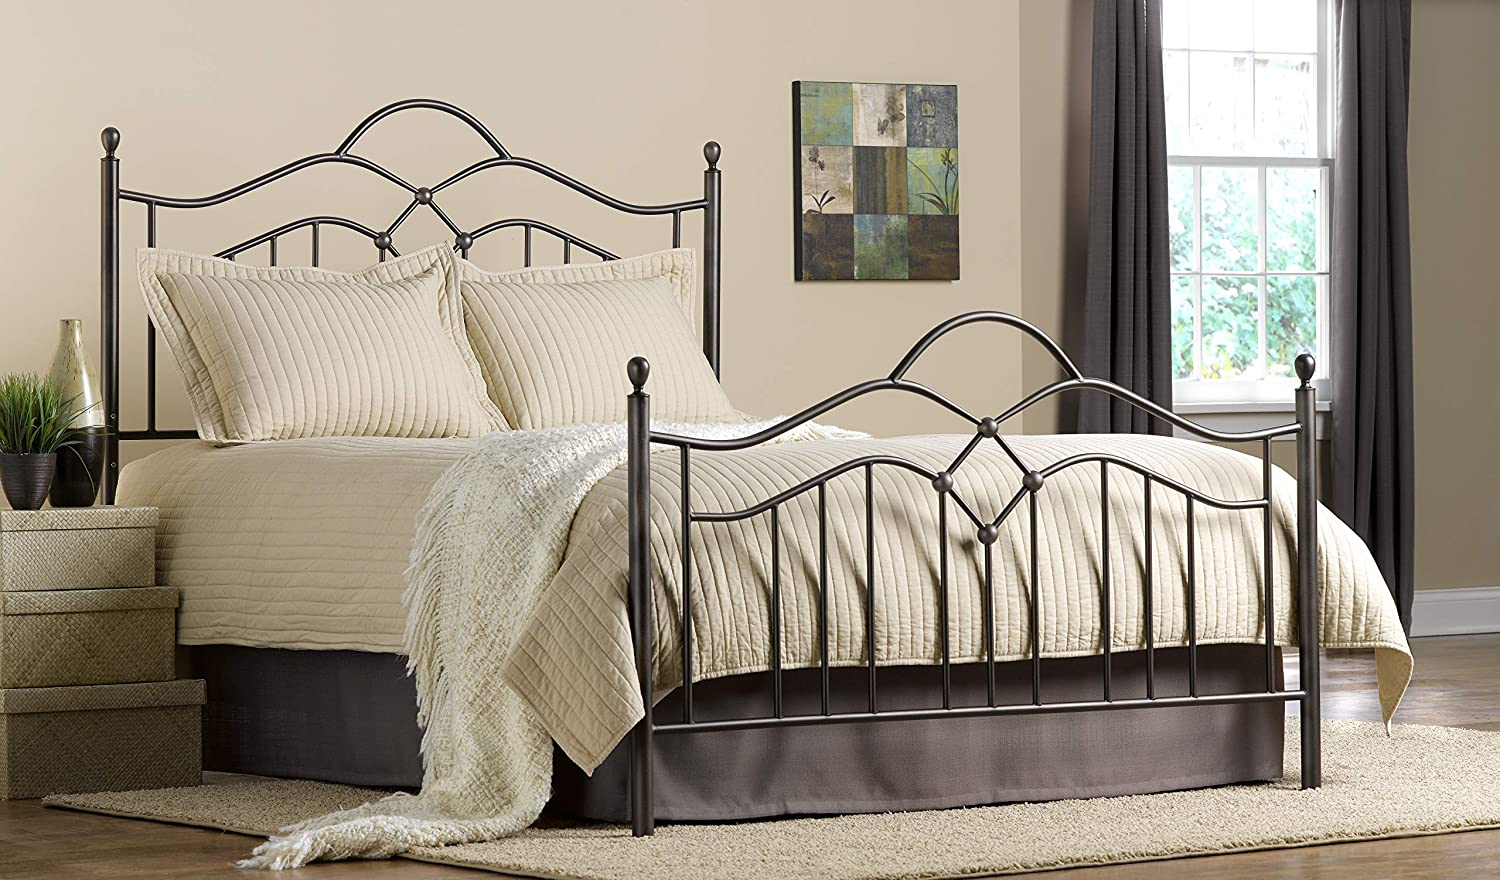 Full Hillsdale Furniture Oklahoma Bed Set with Rails Bronze